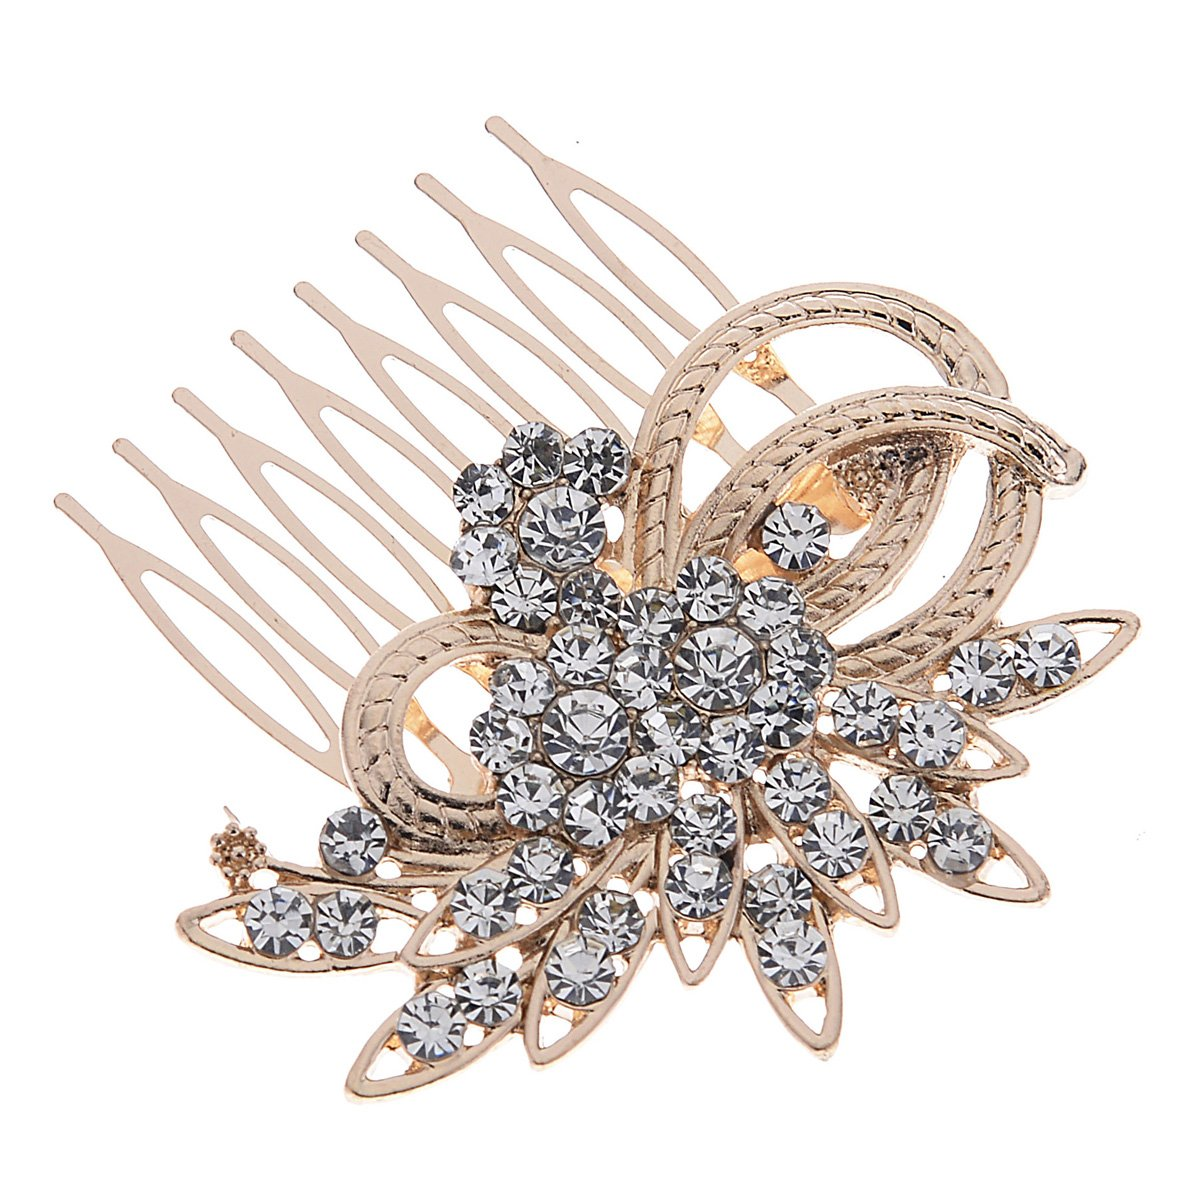 Remedios Vintage Crystal Bridal Hair Comb Wedding Hair Accessory, Light Gold 5